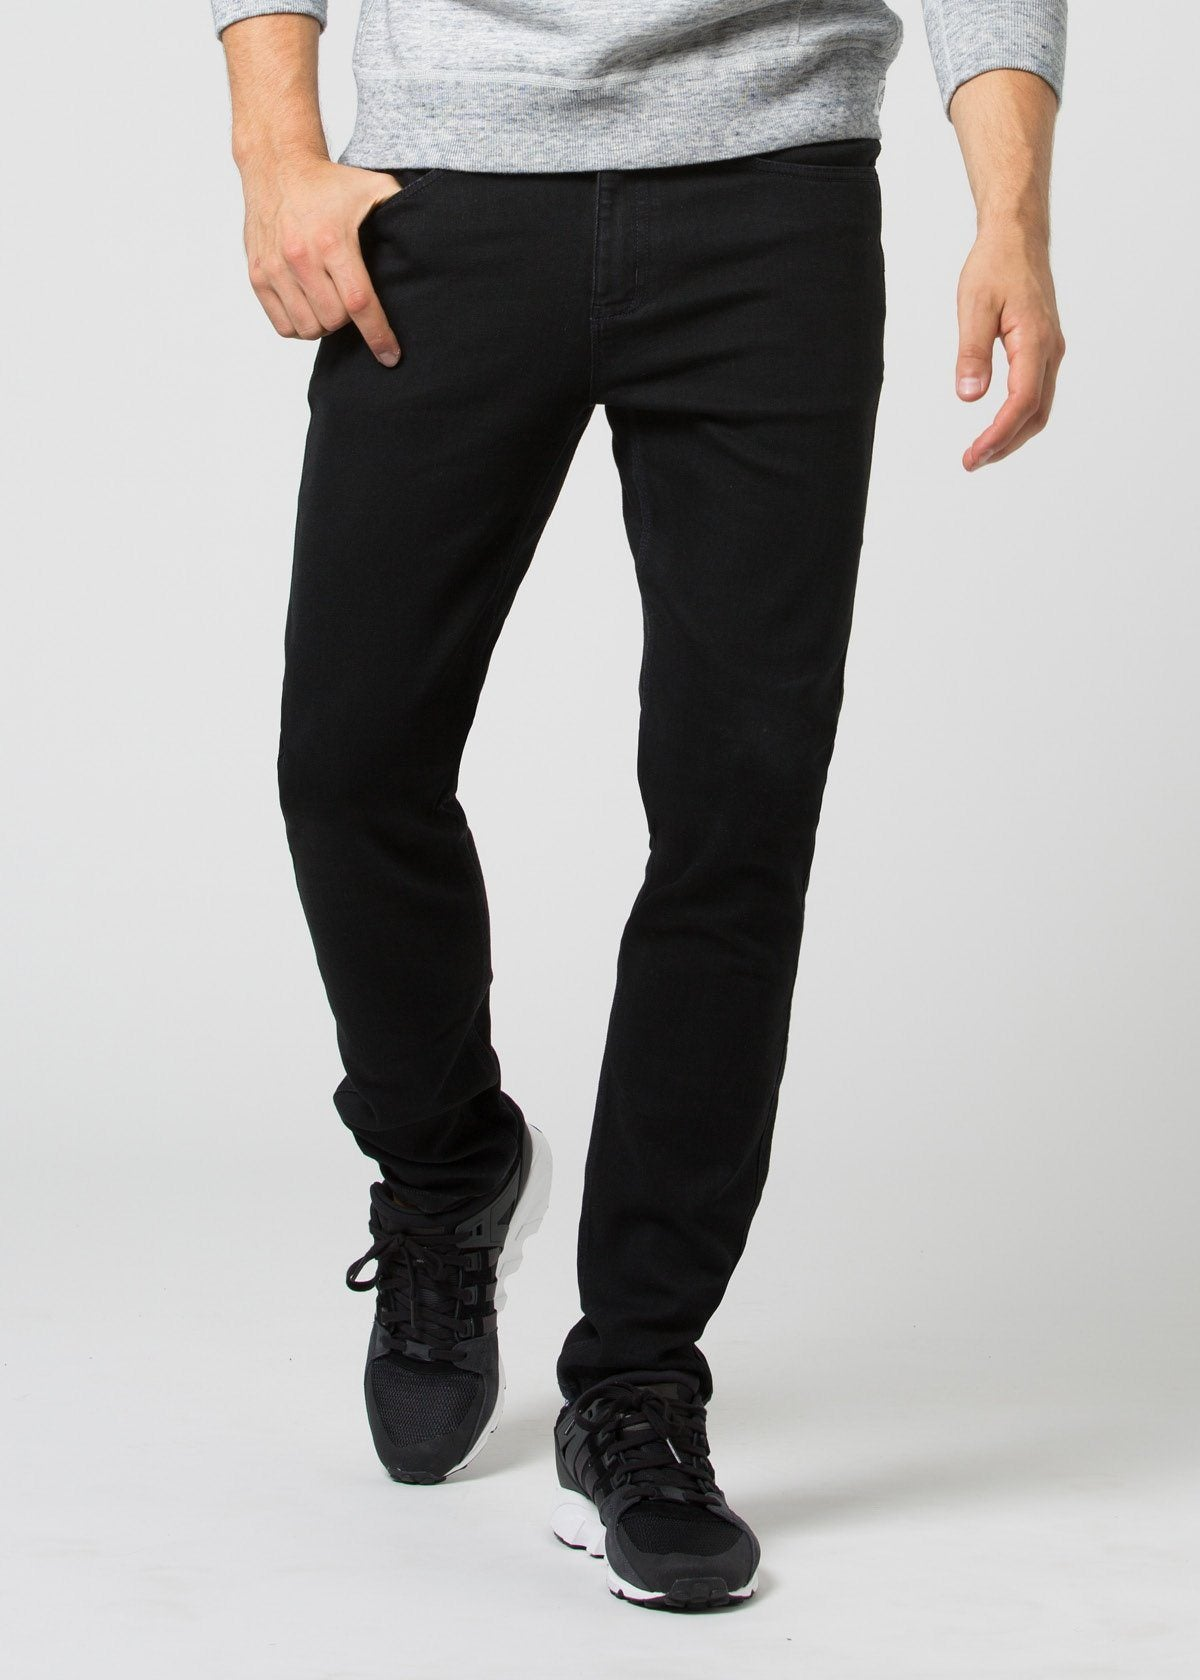 most the men diptic comforter style mens jeans comfortable brands coolest denim mh and best for guys